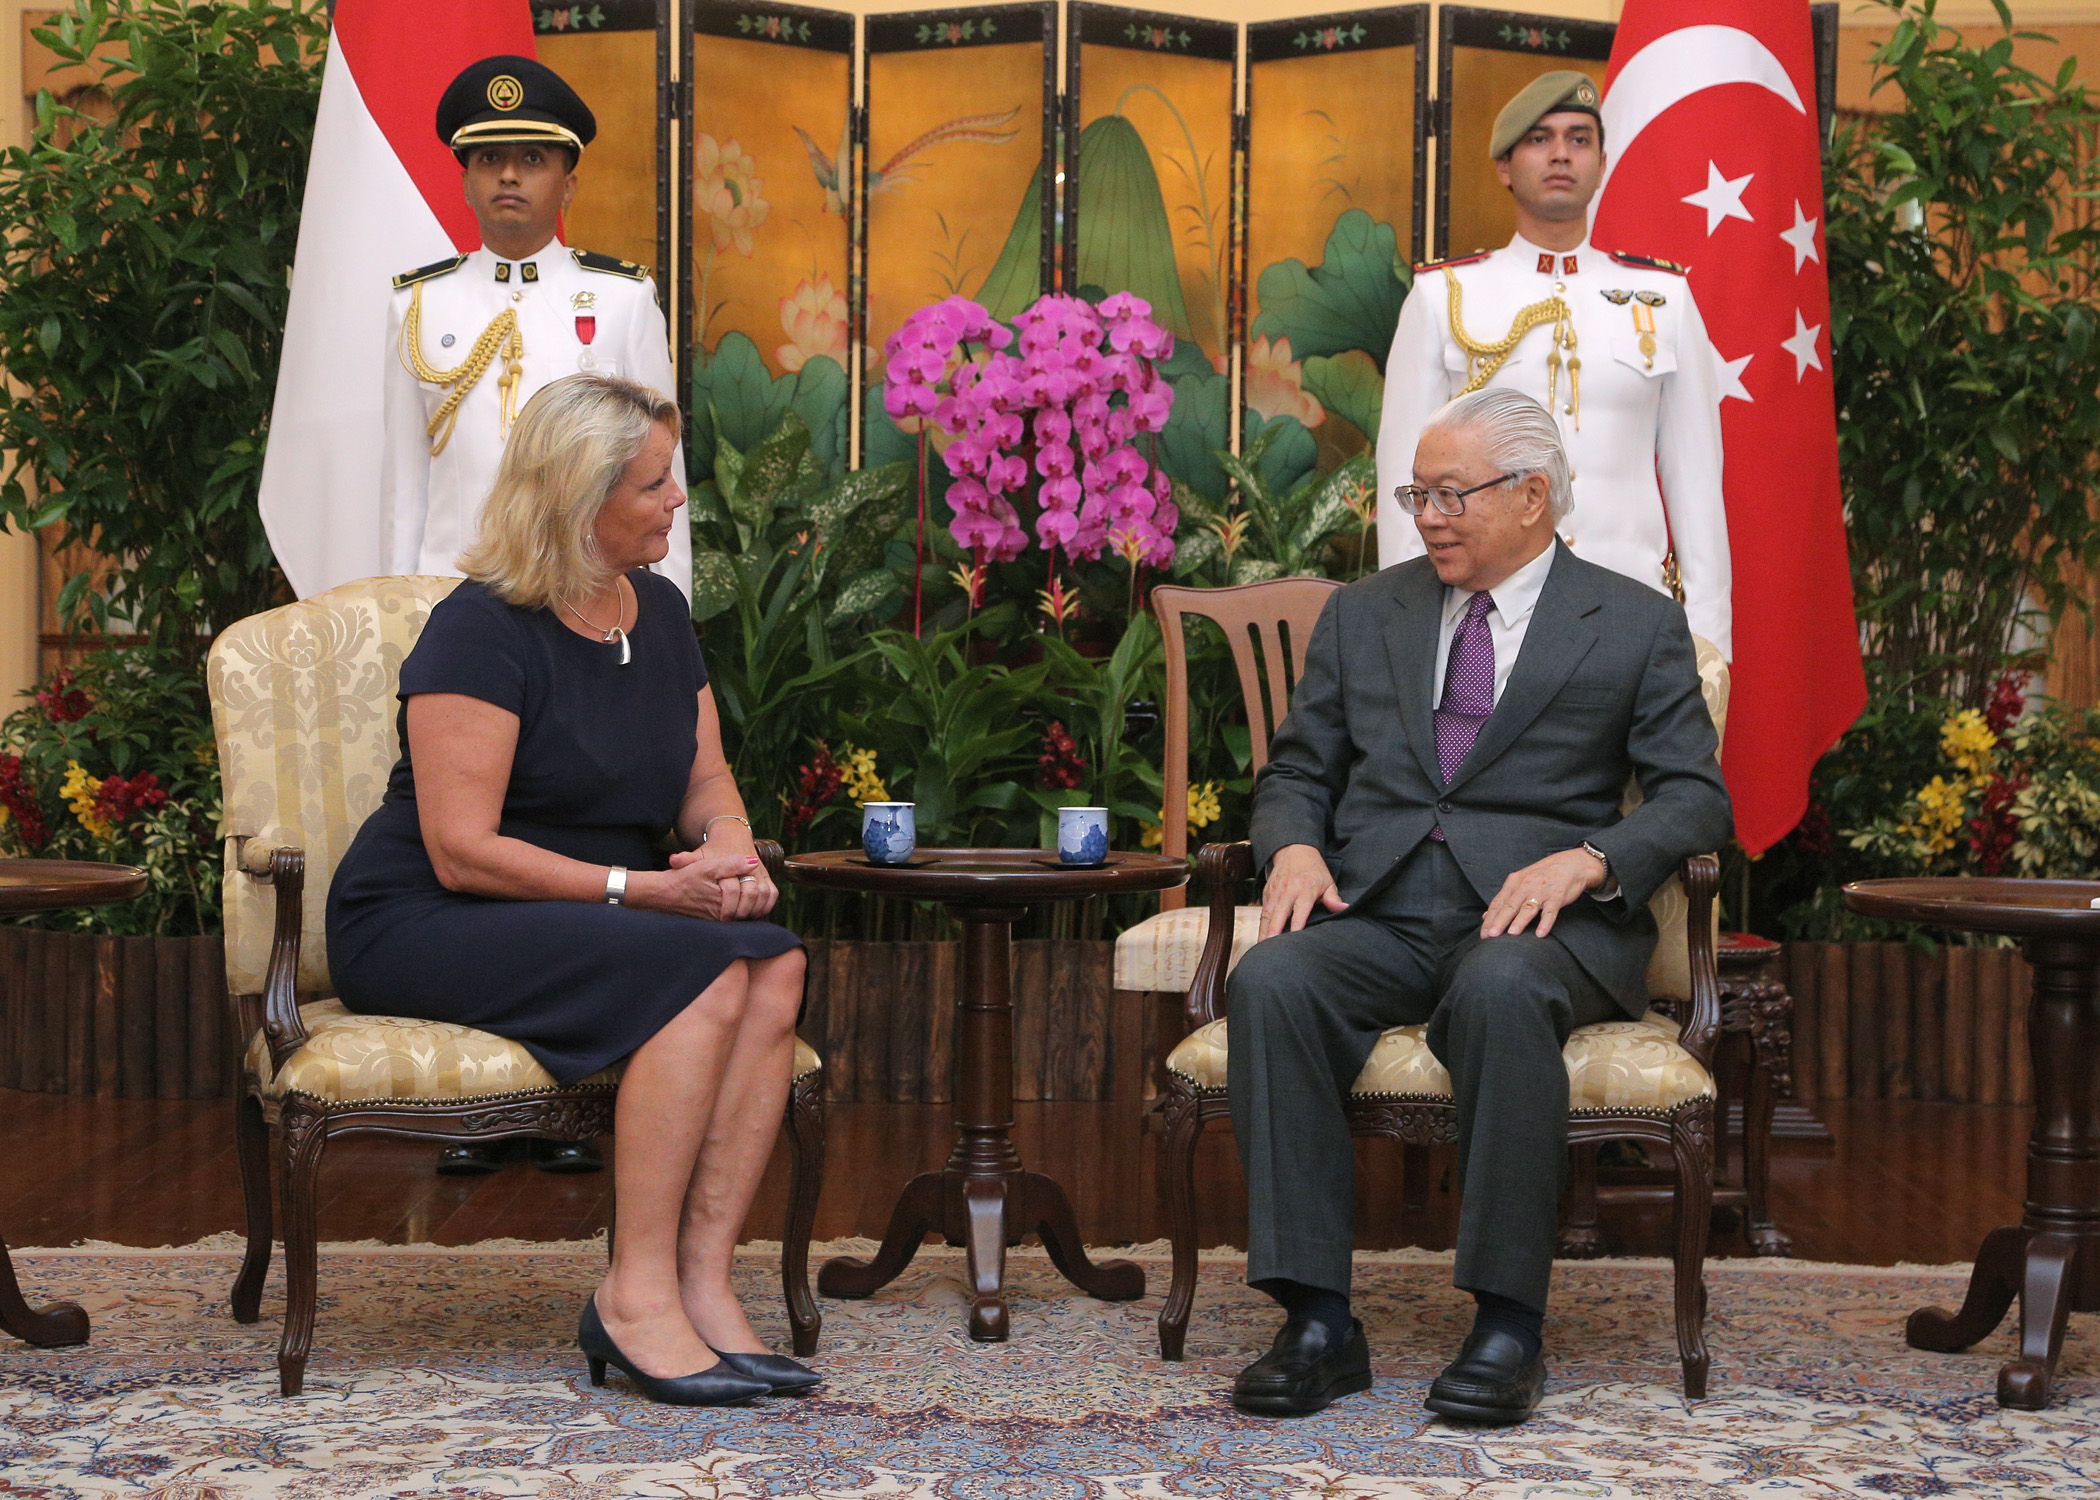 Finnish Ambassador in Singapore, Paula Parviainen, and the President of Singapore, Tony Tan. Source of picture: finland.org.sg